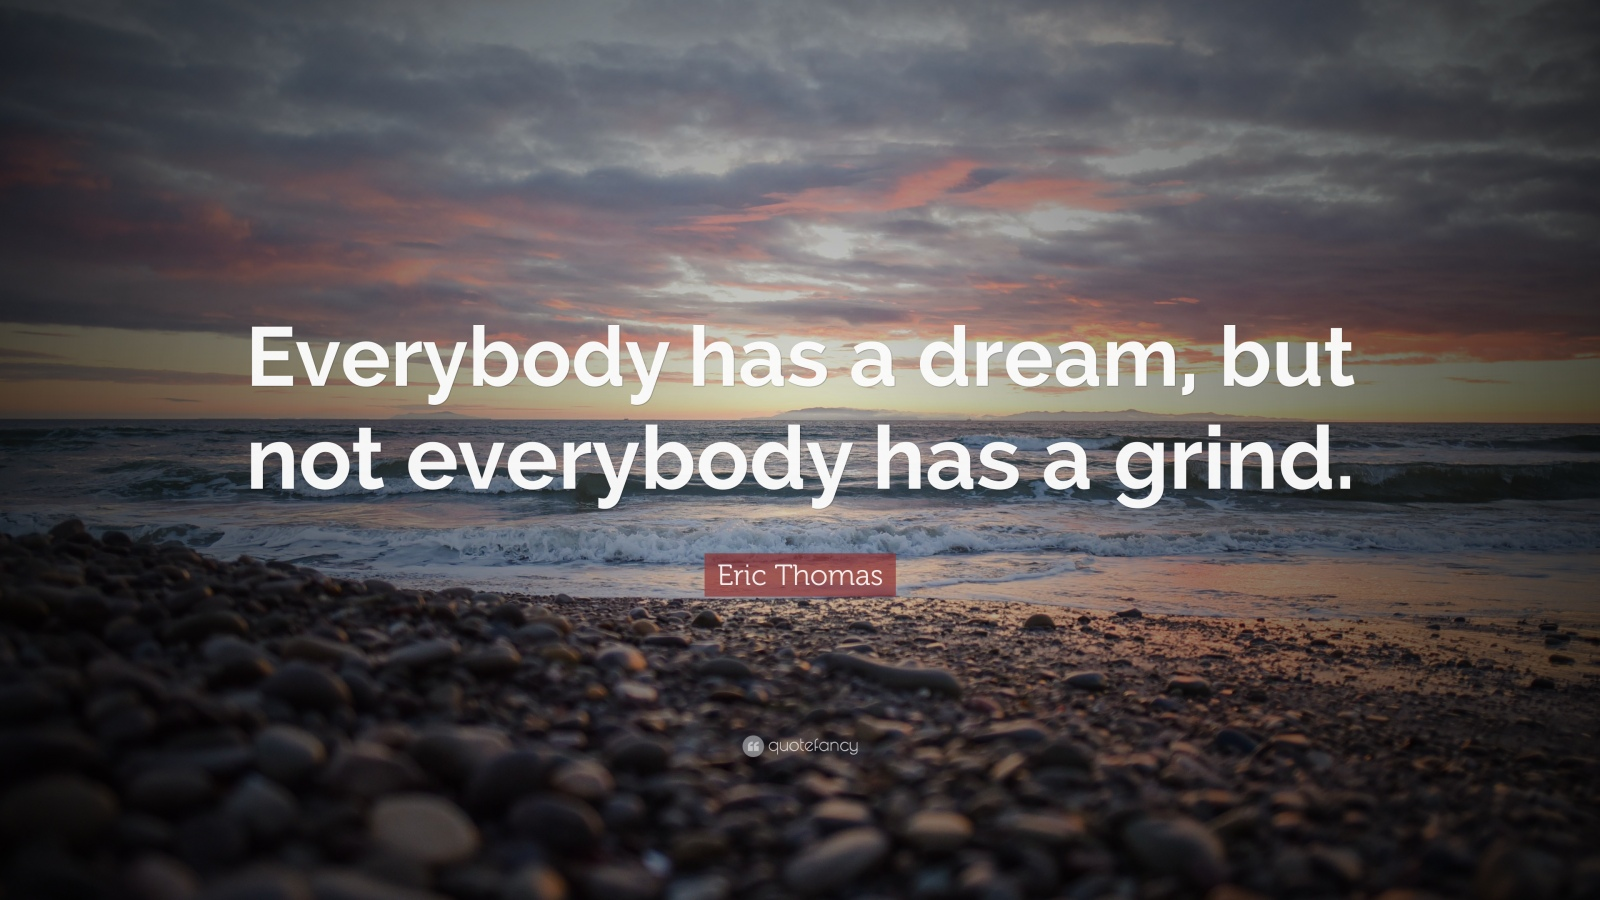 Nike Inspirational Quotes Wallpaper Download Eric Thomas Quotes Wallpaper Gallery